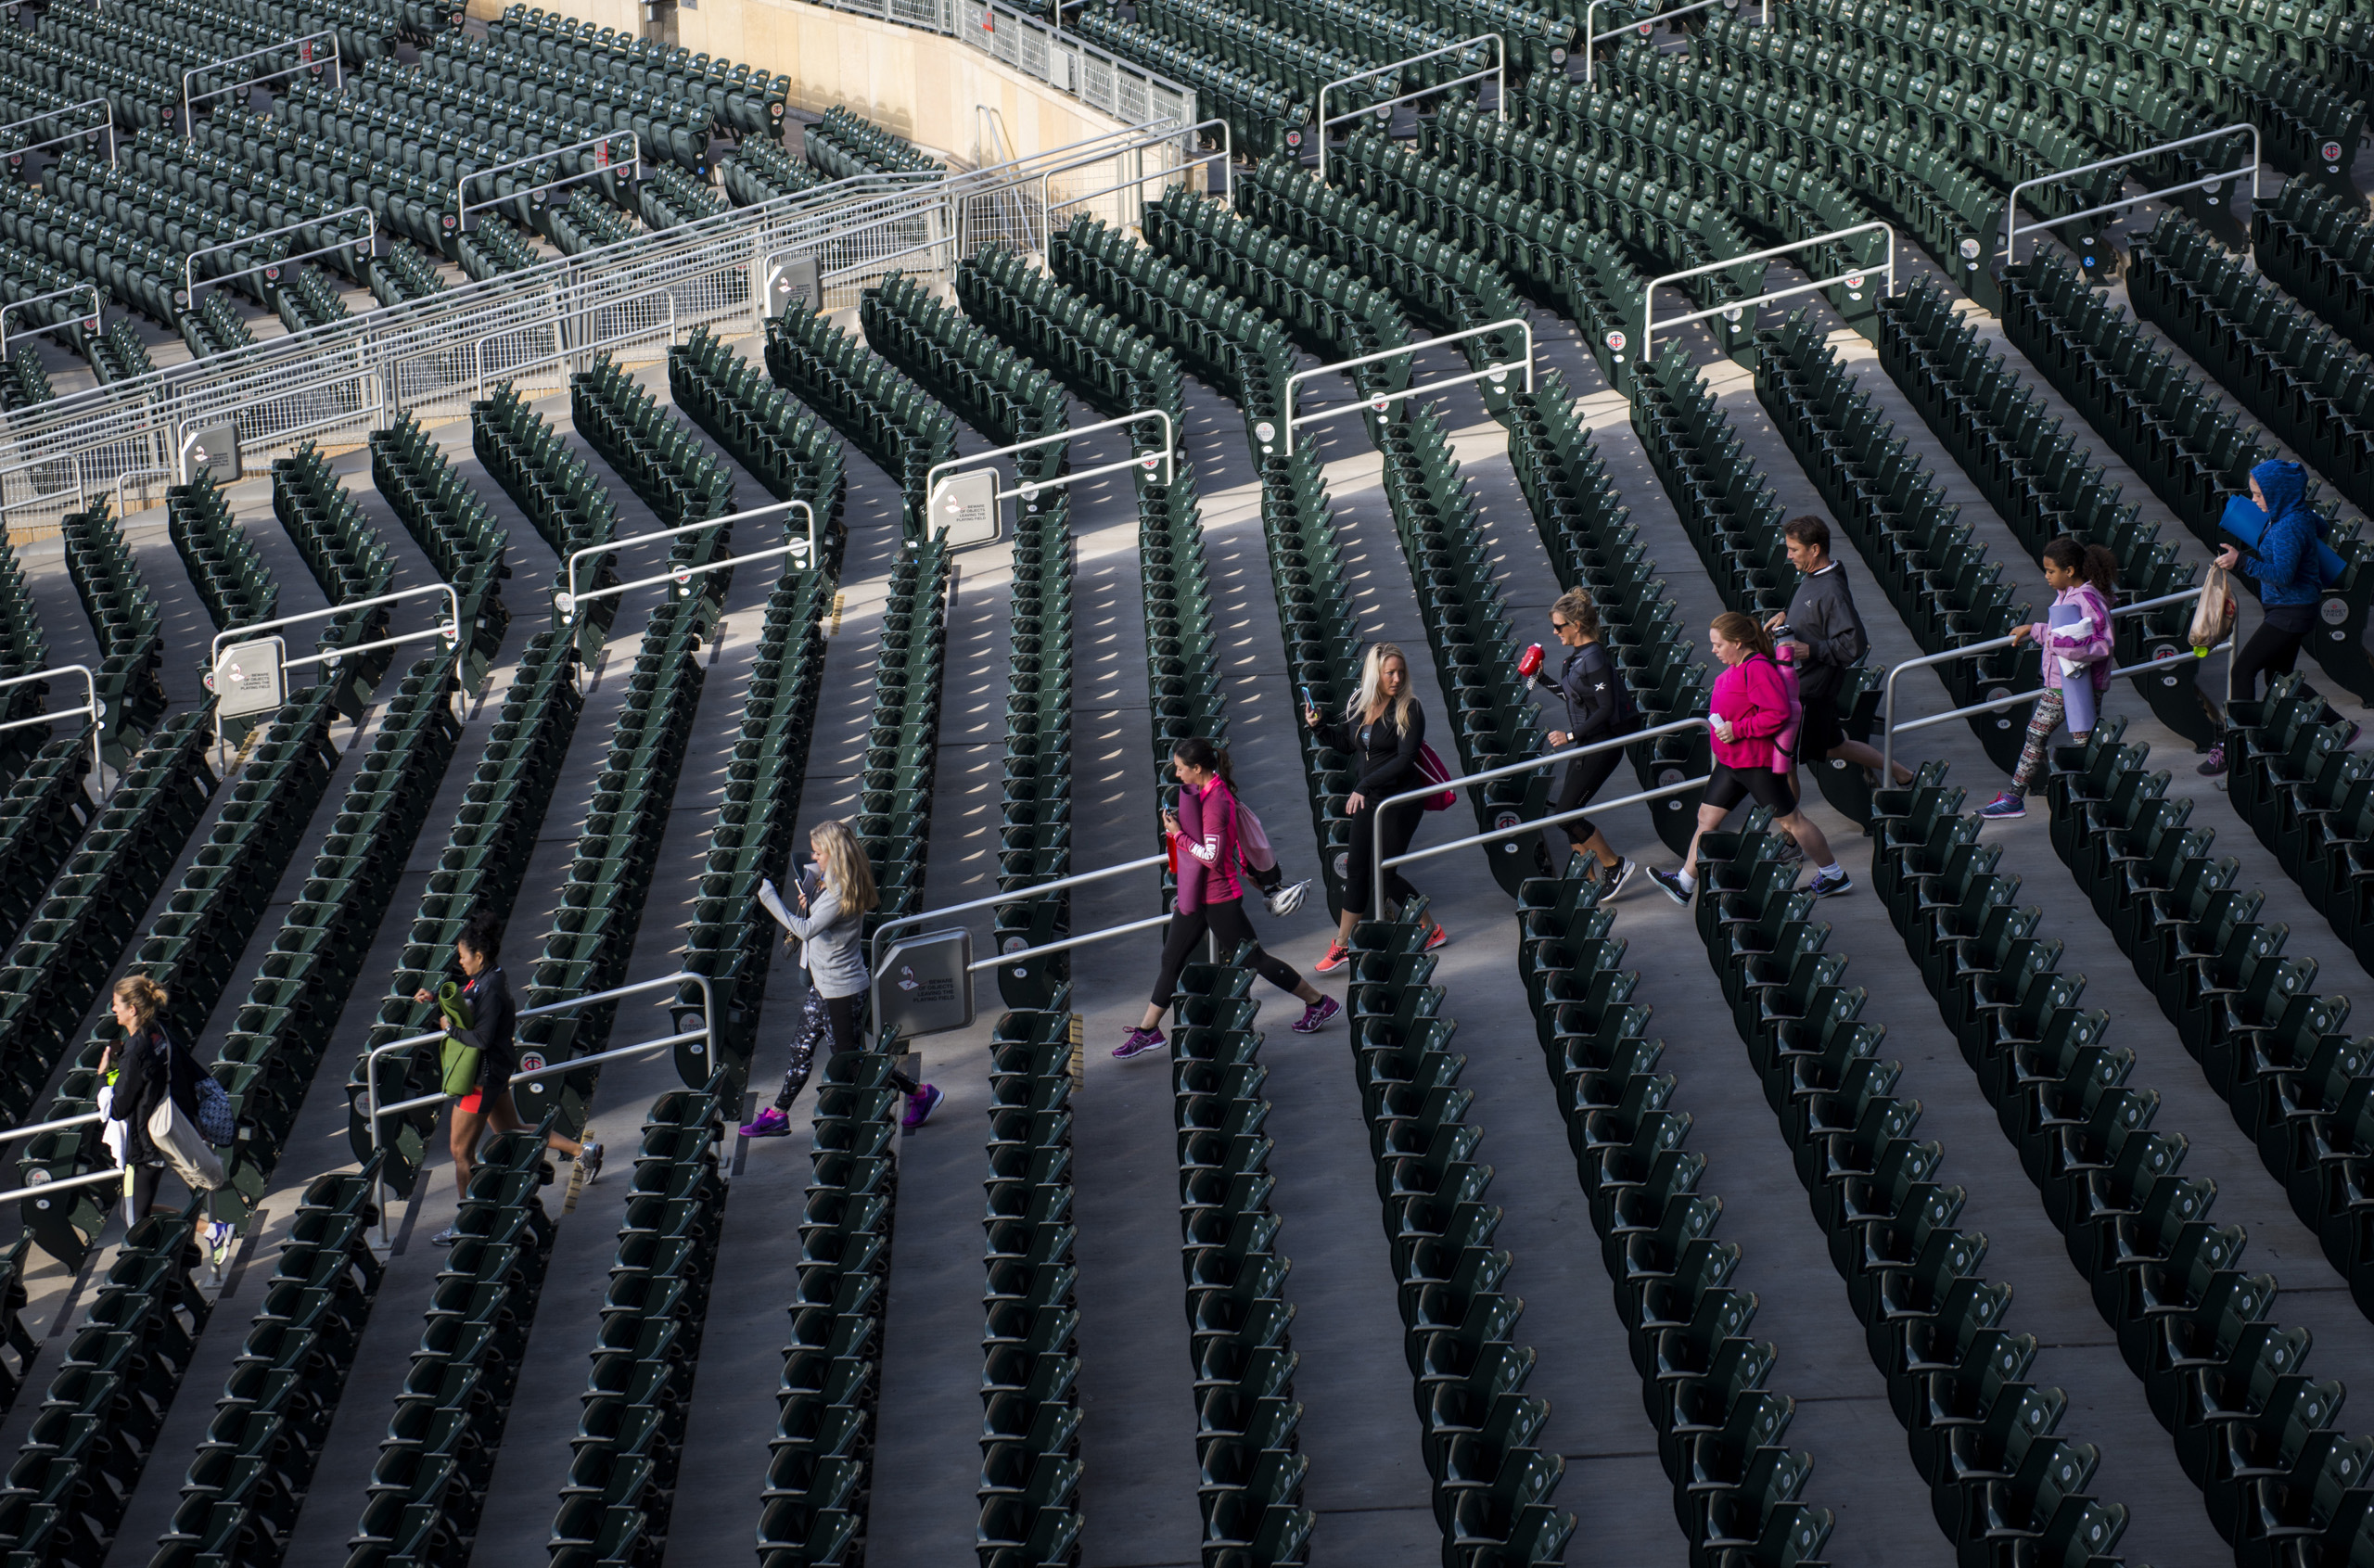 Attendees file into the Fitbit Local Minneapolis event at Target Field on October 1, 2016.